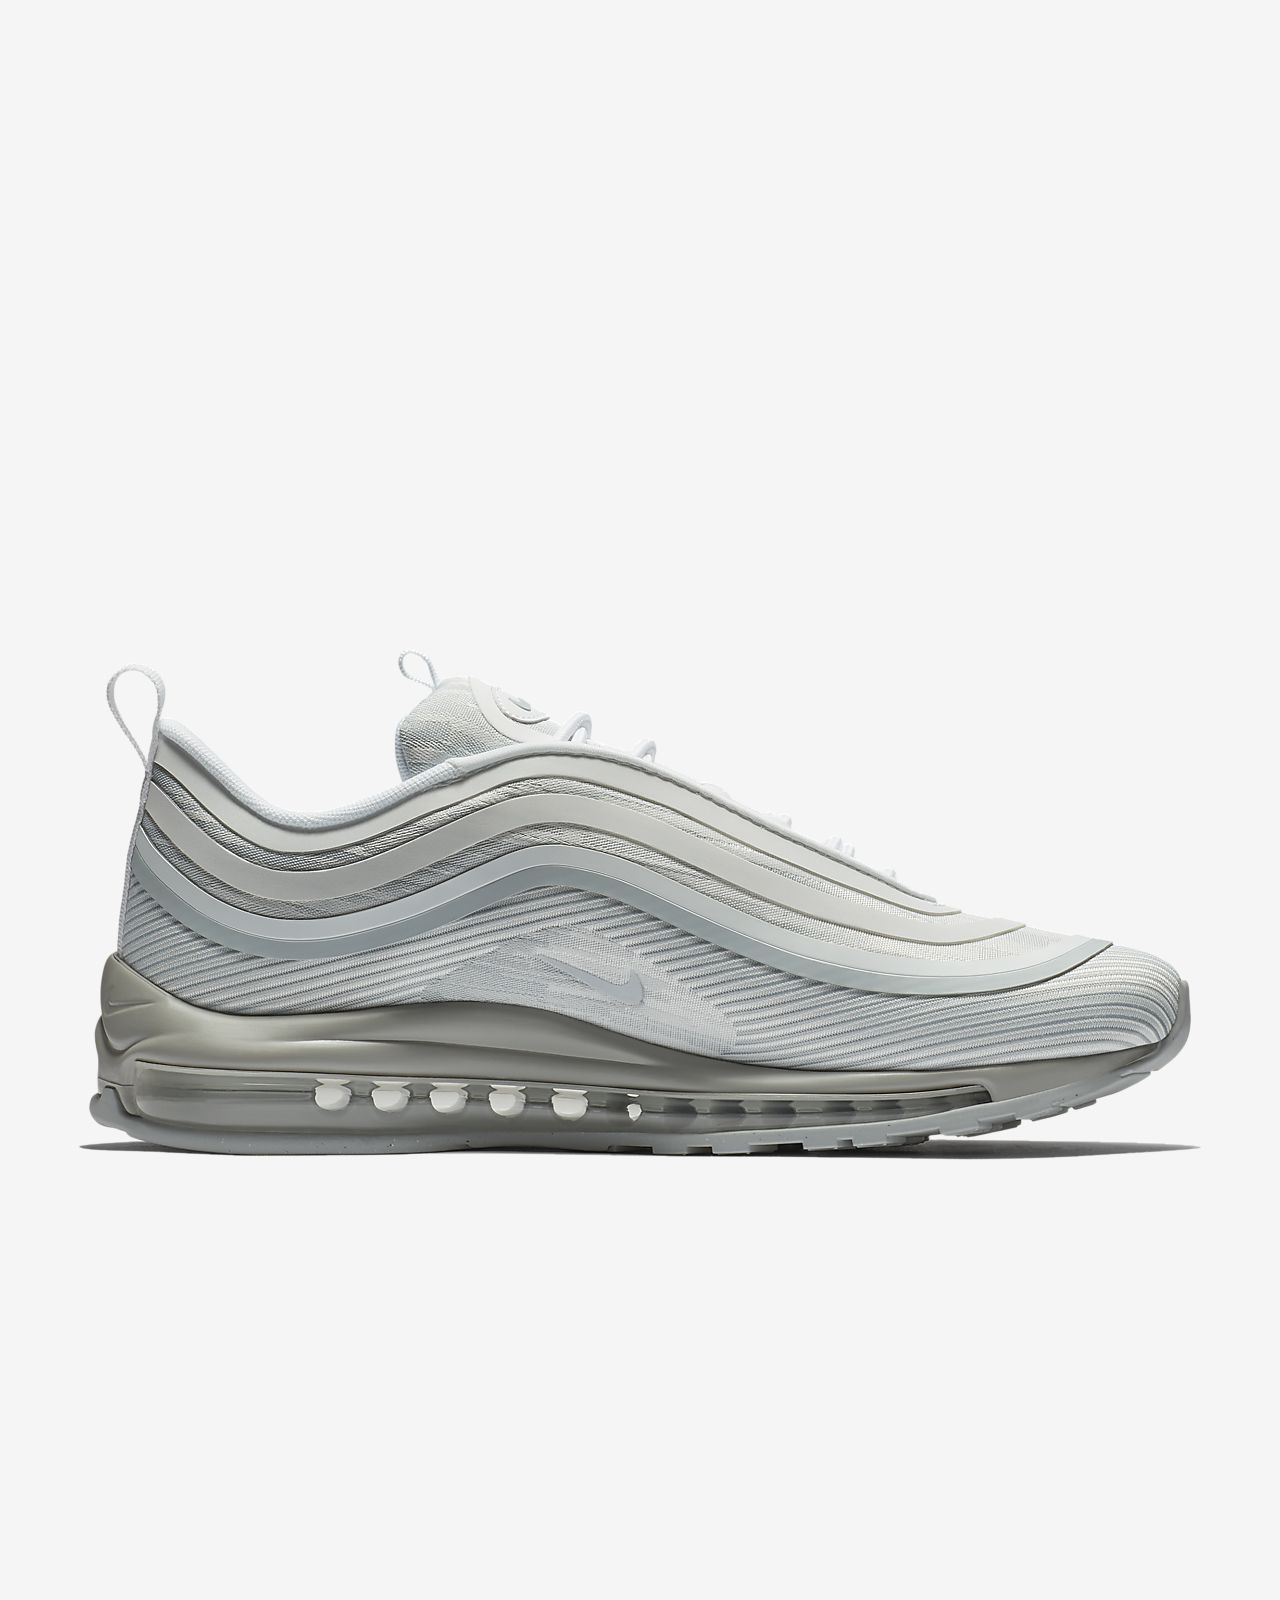 Nike Air Max 97 Ultra '17 Men's Shoe